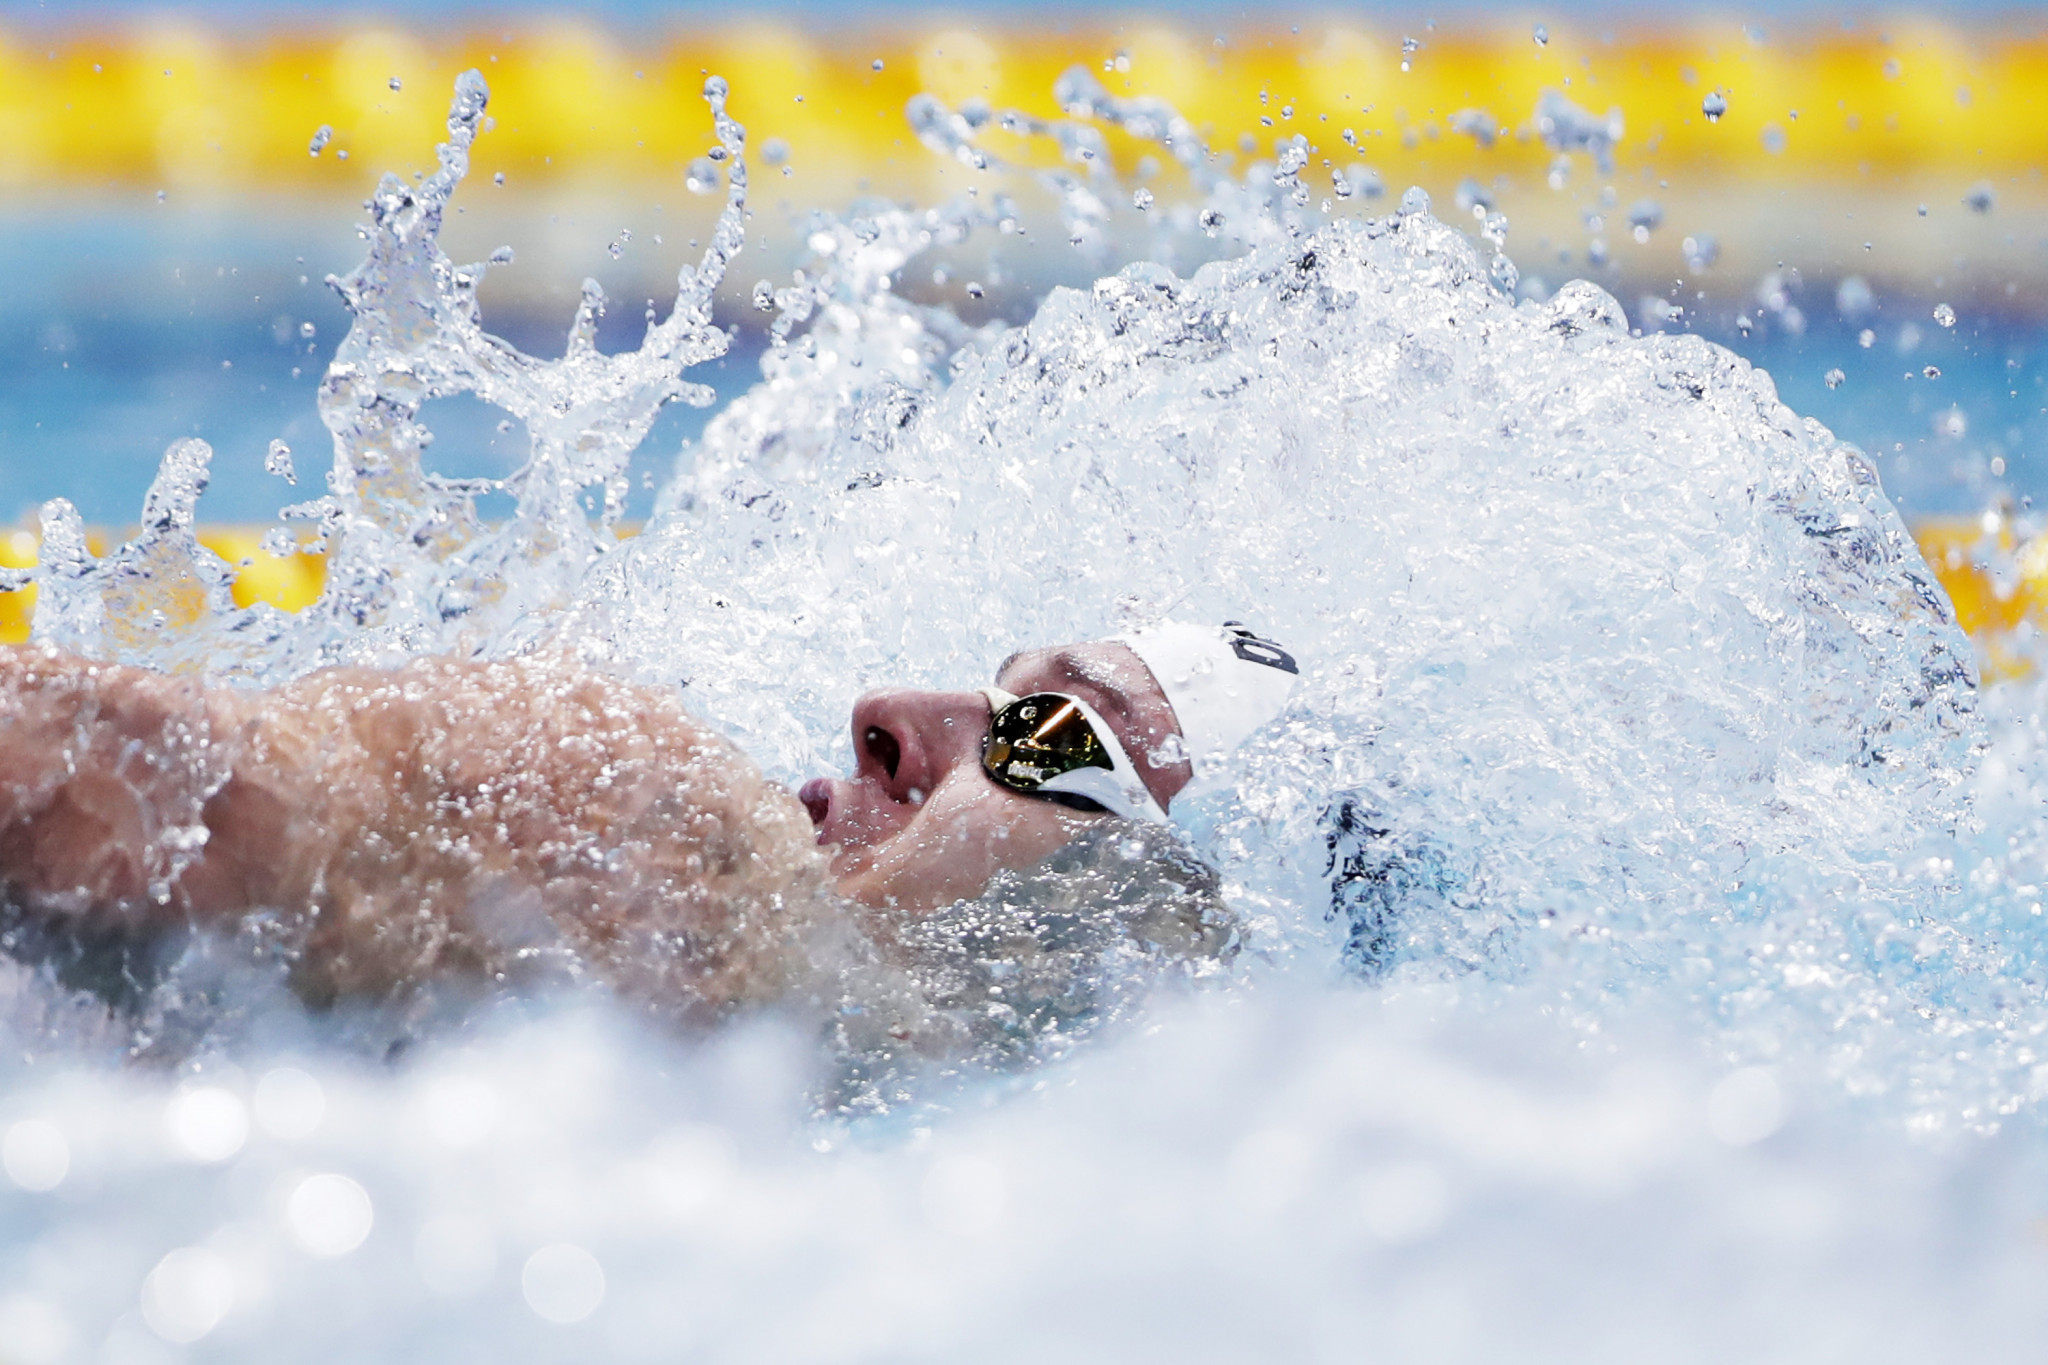 Mitch Larkin was one of Australia's three gold medallists today, winning the men's 200m backstroke event ©Getty Images